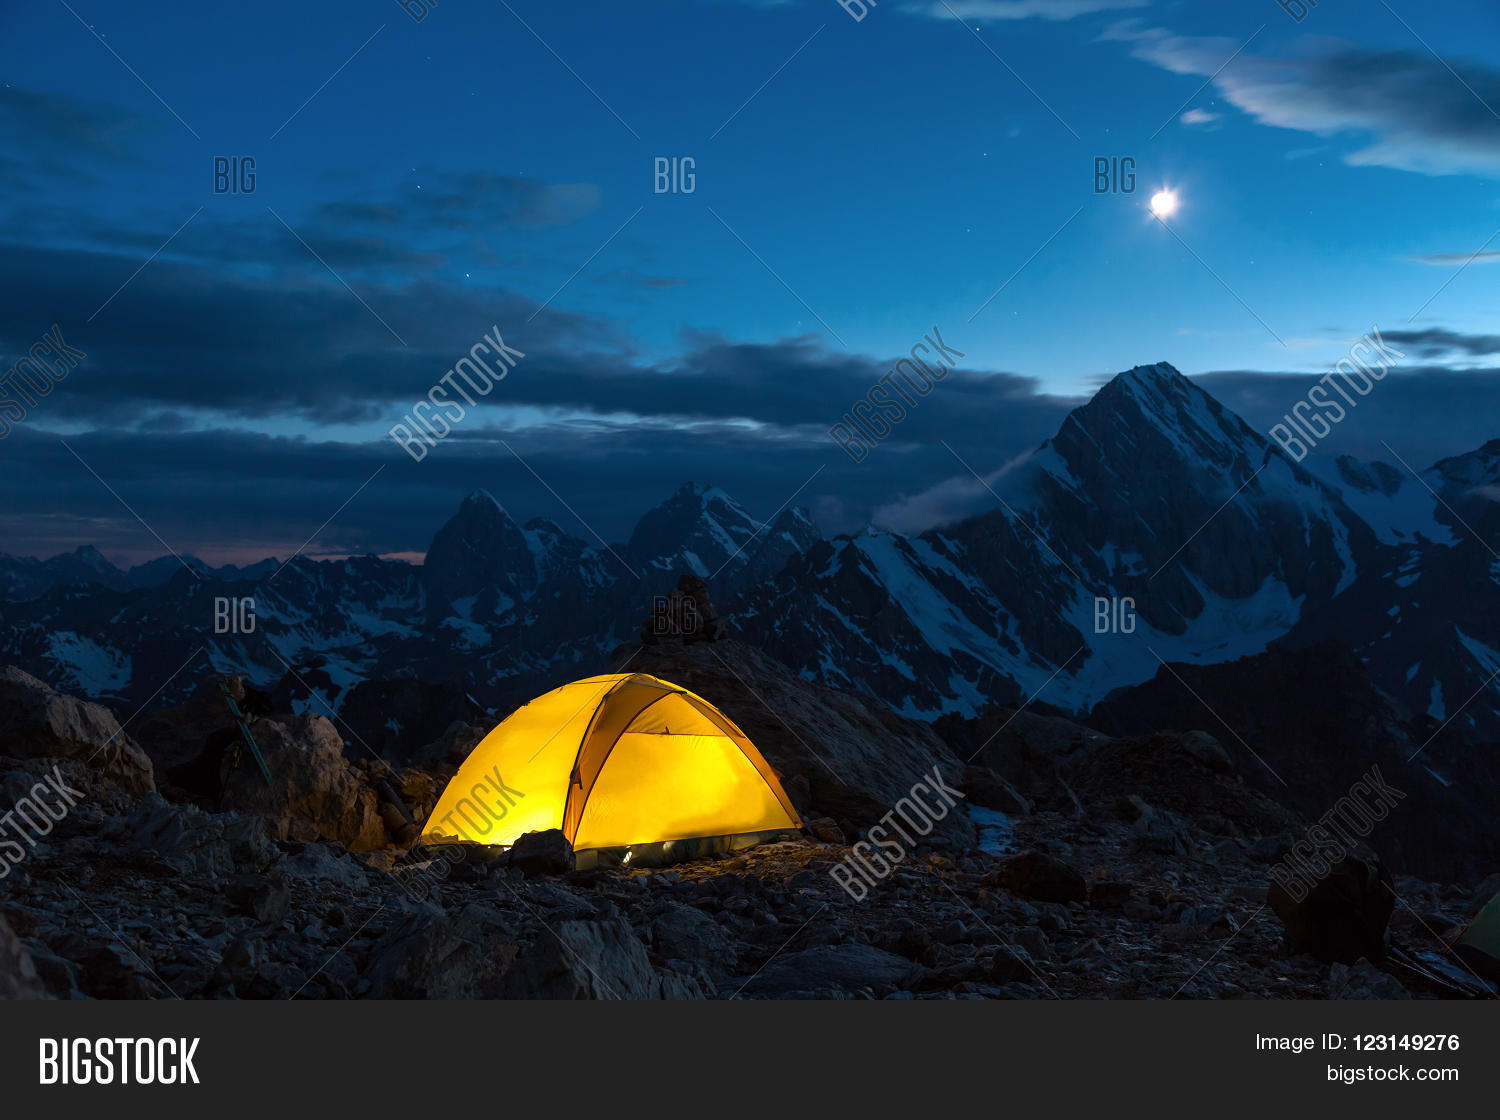 Illuminated Camping Image & Photo (Free Trial) | Bigstock